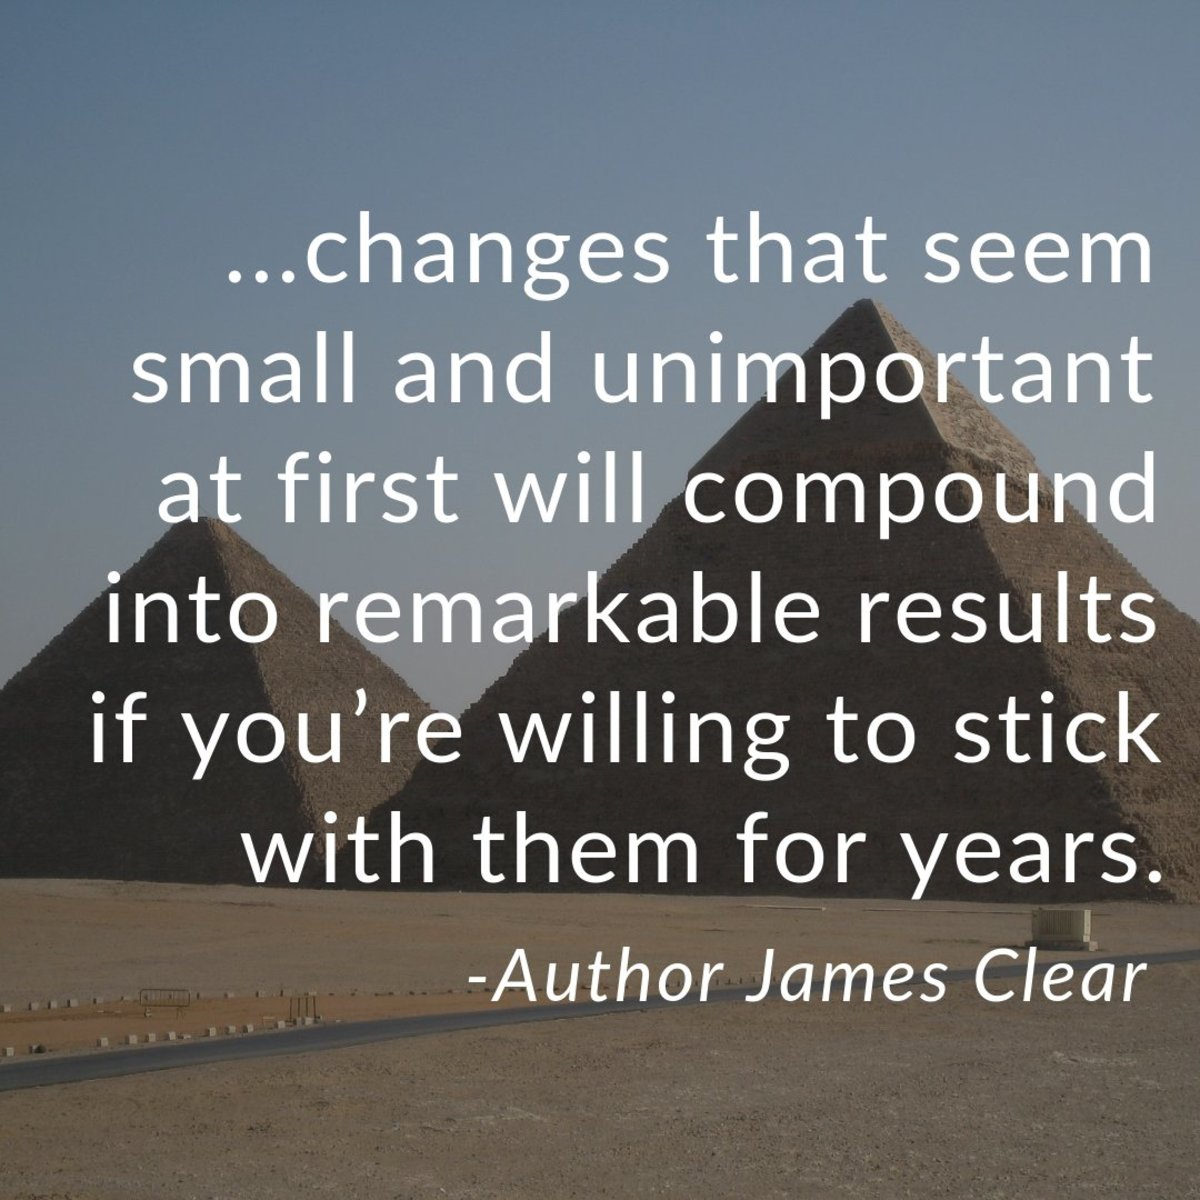 Quote from James Clear's book, Atomic Habits.